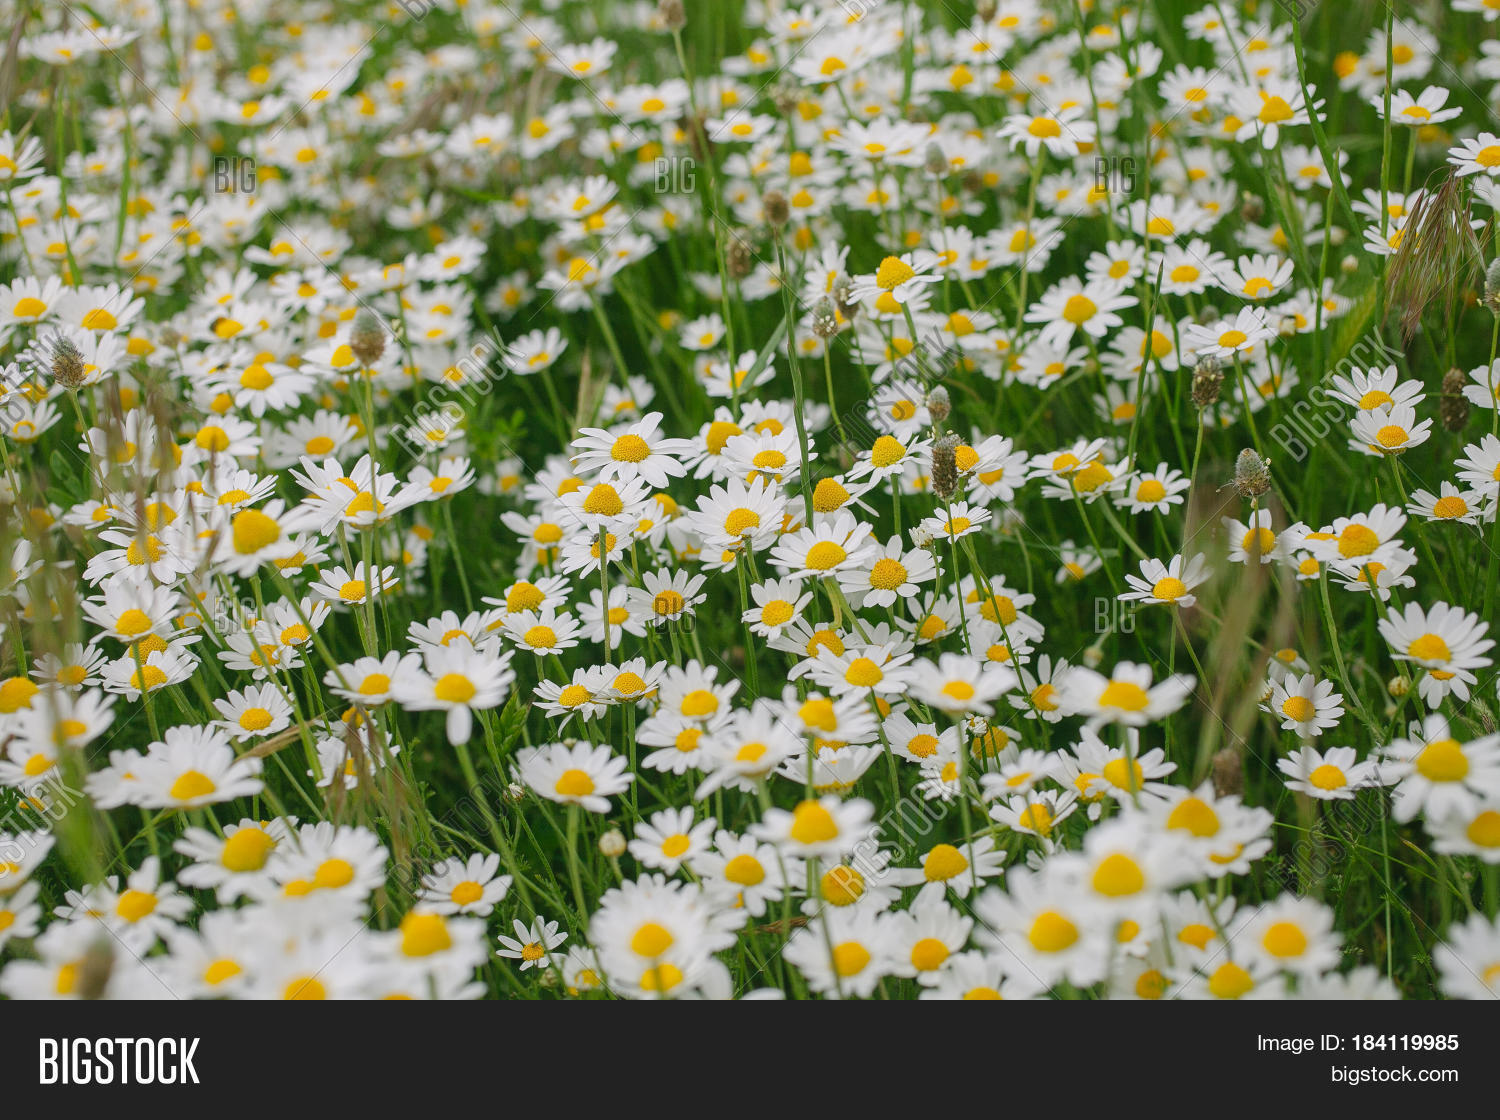 Camomile Flower Image Photo Free Trial Bigstock